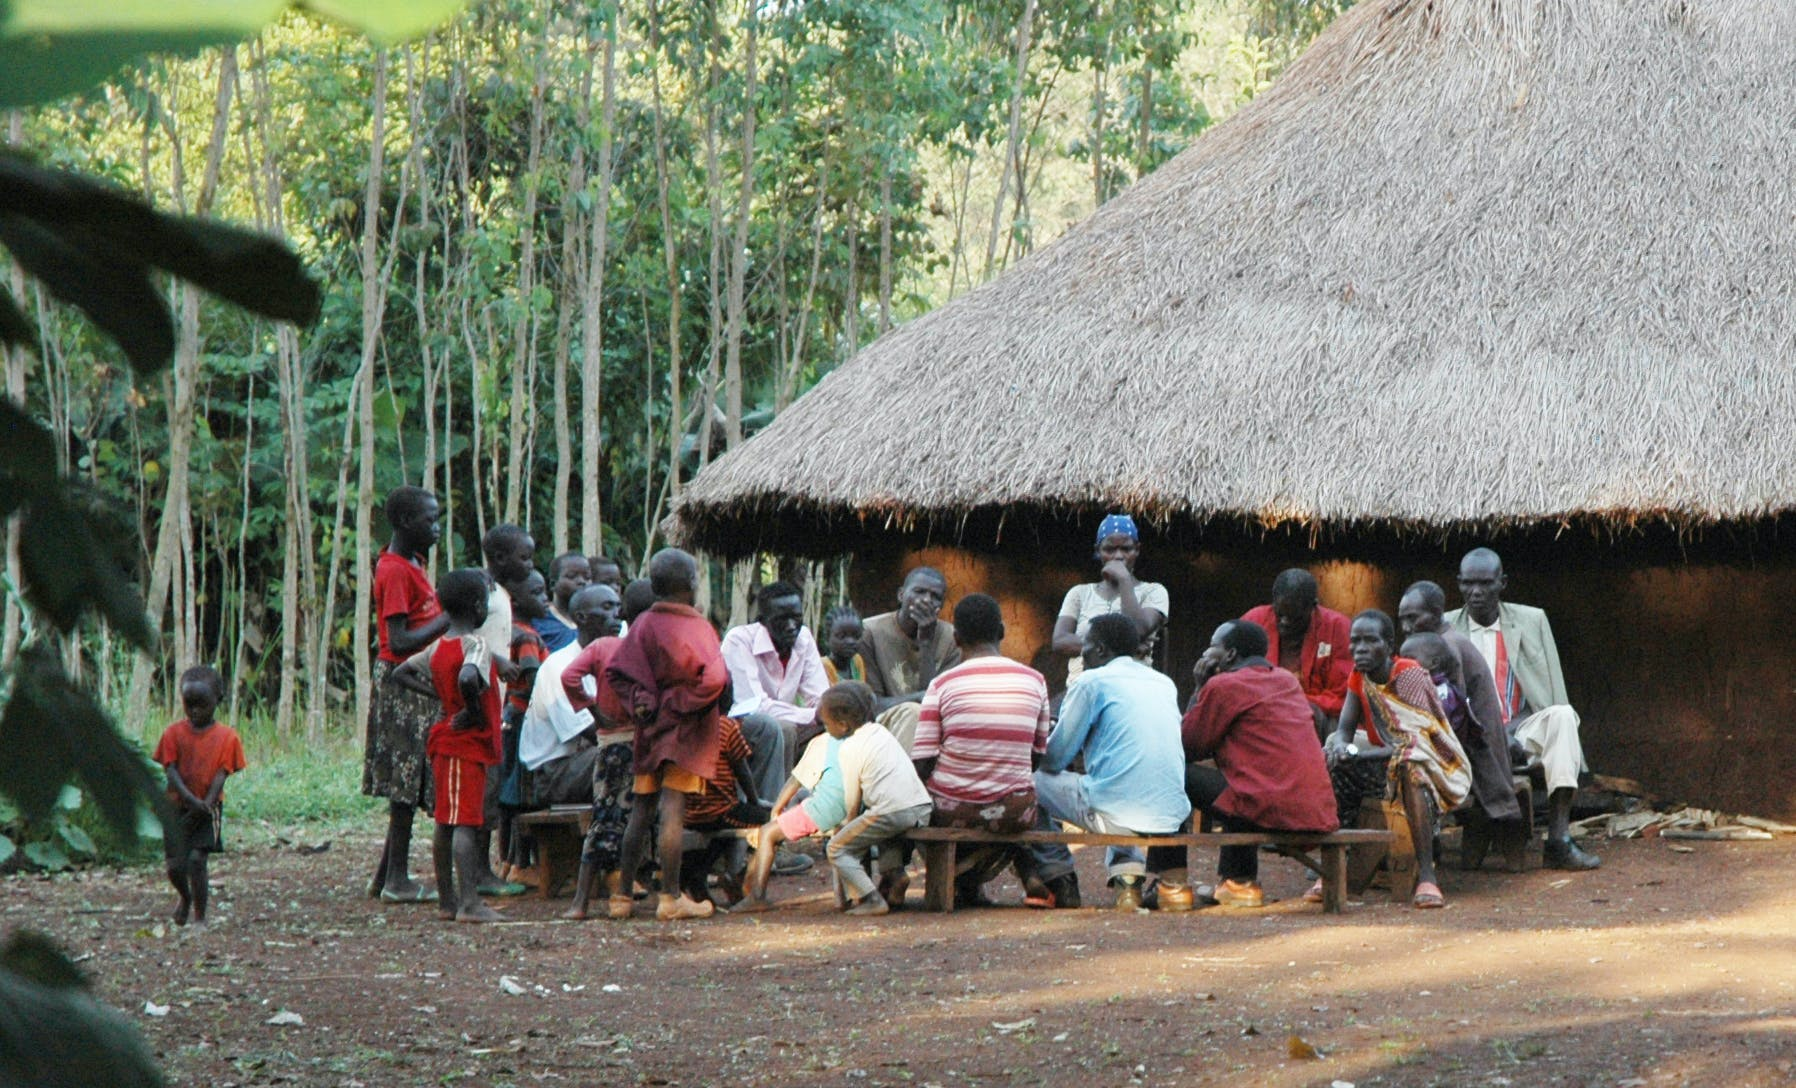 Borana people sitting outside a hut